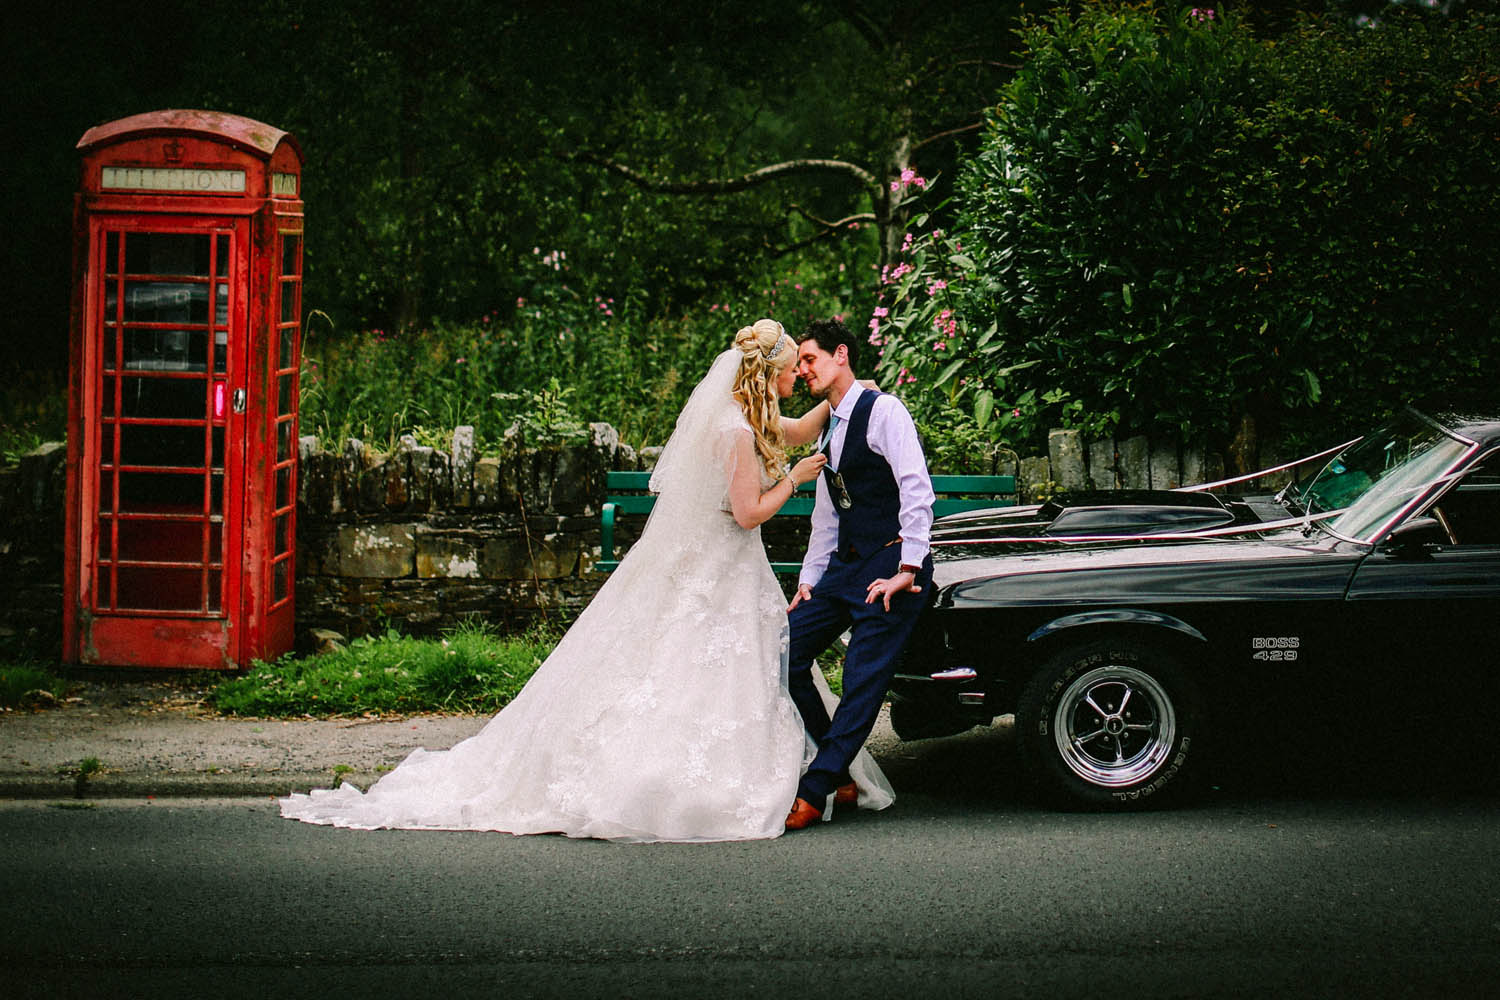 Bride and groom old red phone box Ford Mustang MacDonald Kilhey Court wedding photographer Wes Simpson